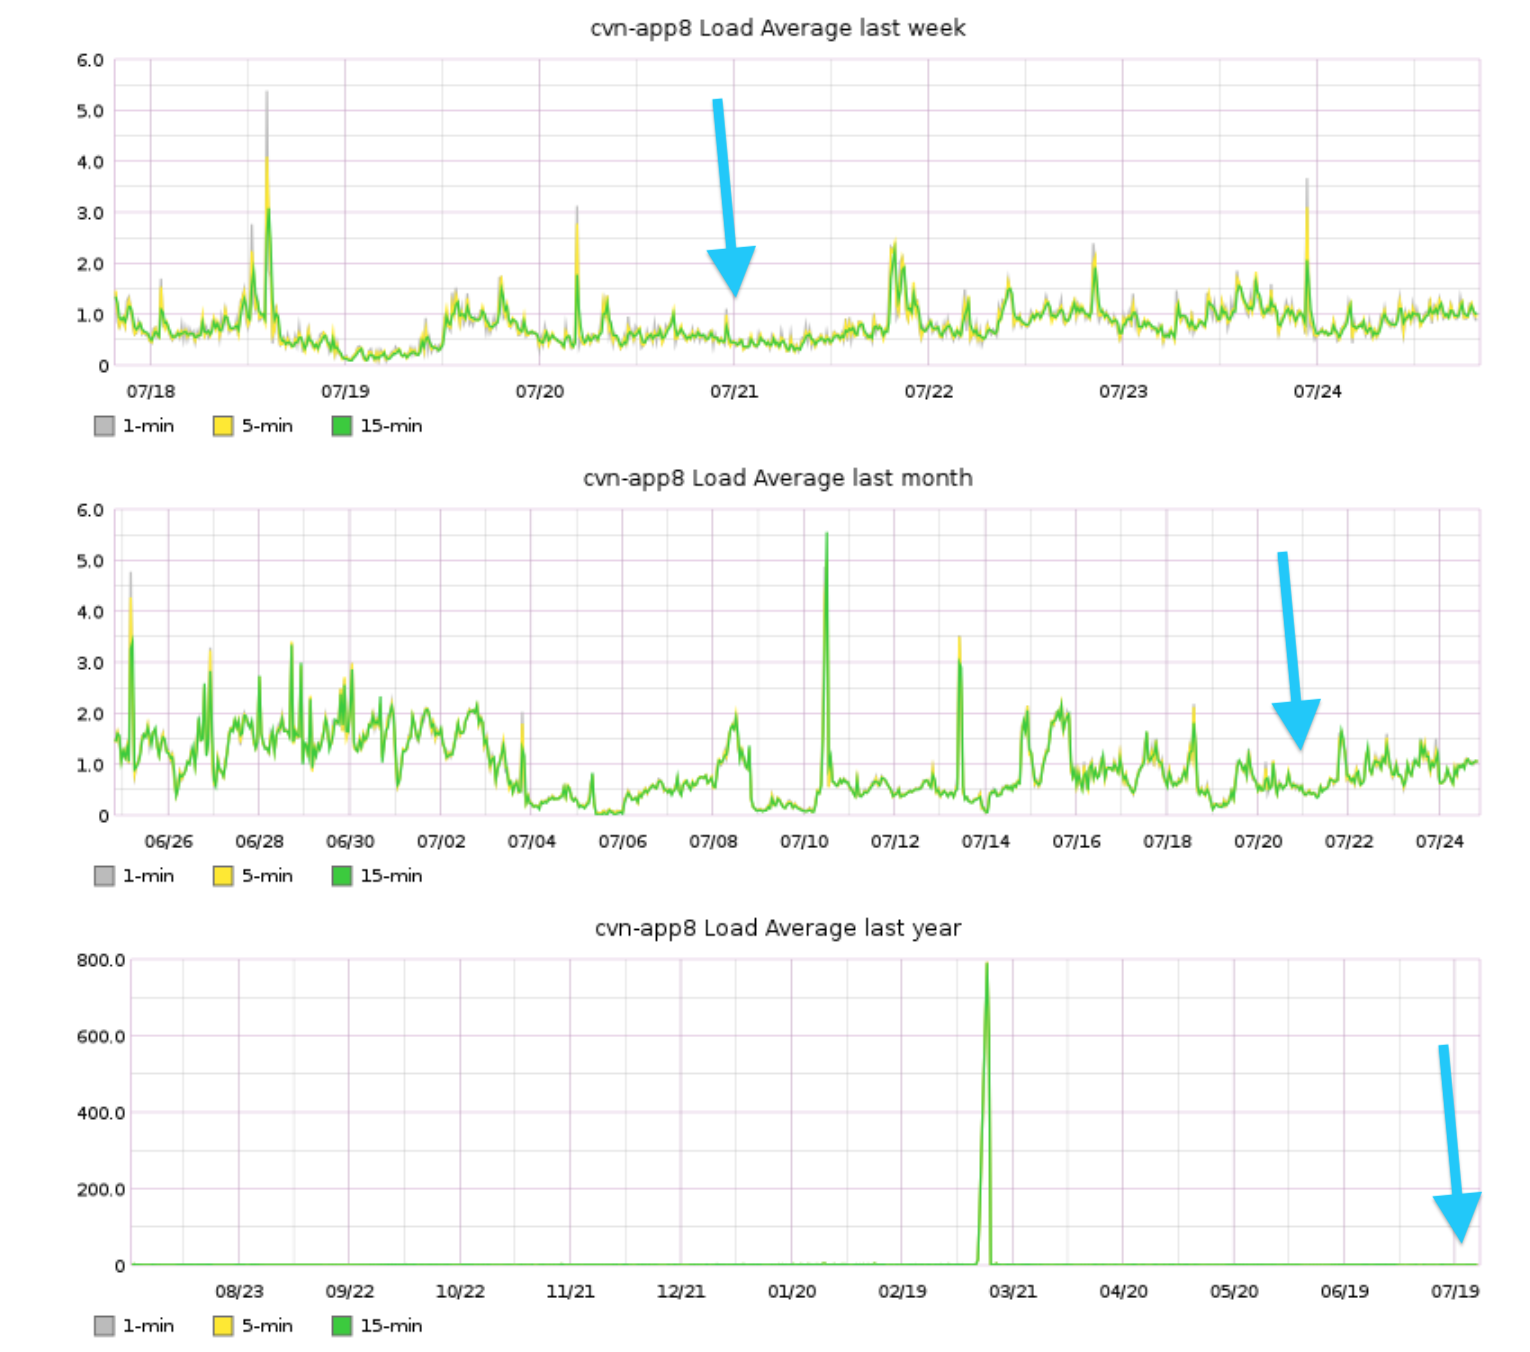 Graph of load average from cvn-app8 by week, month, and year